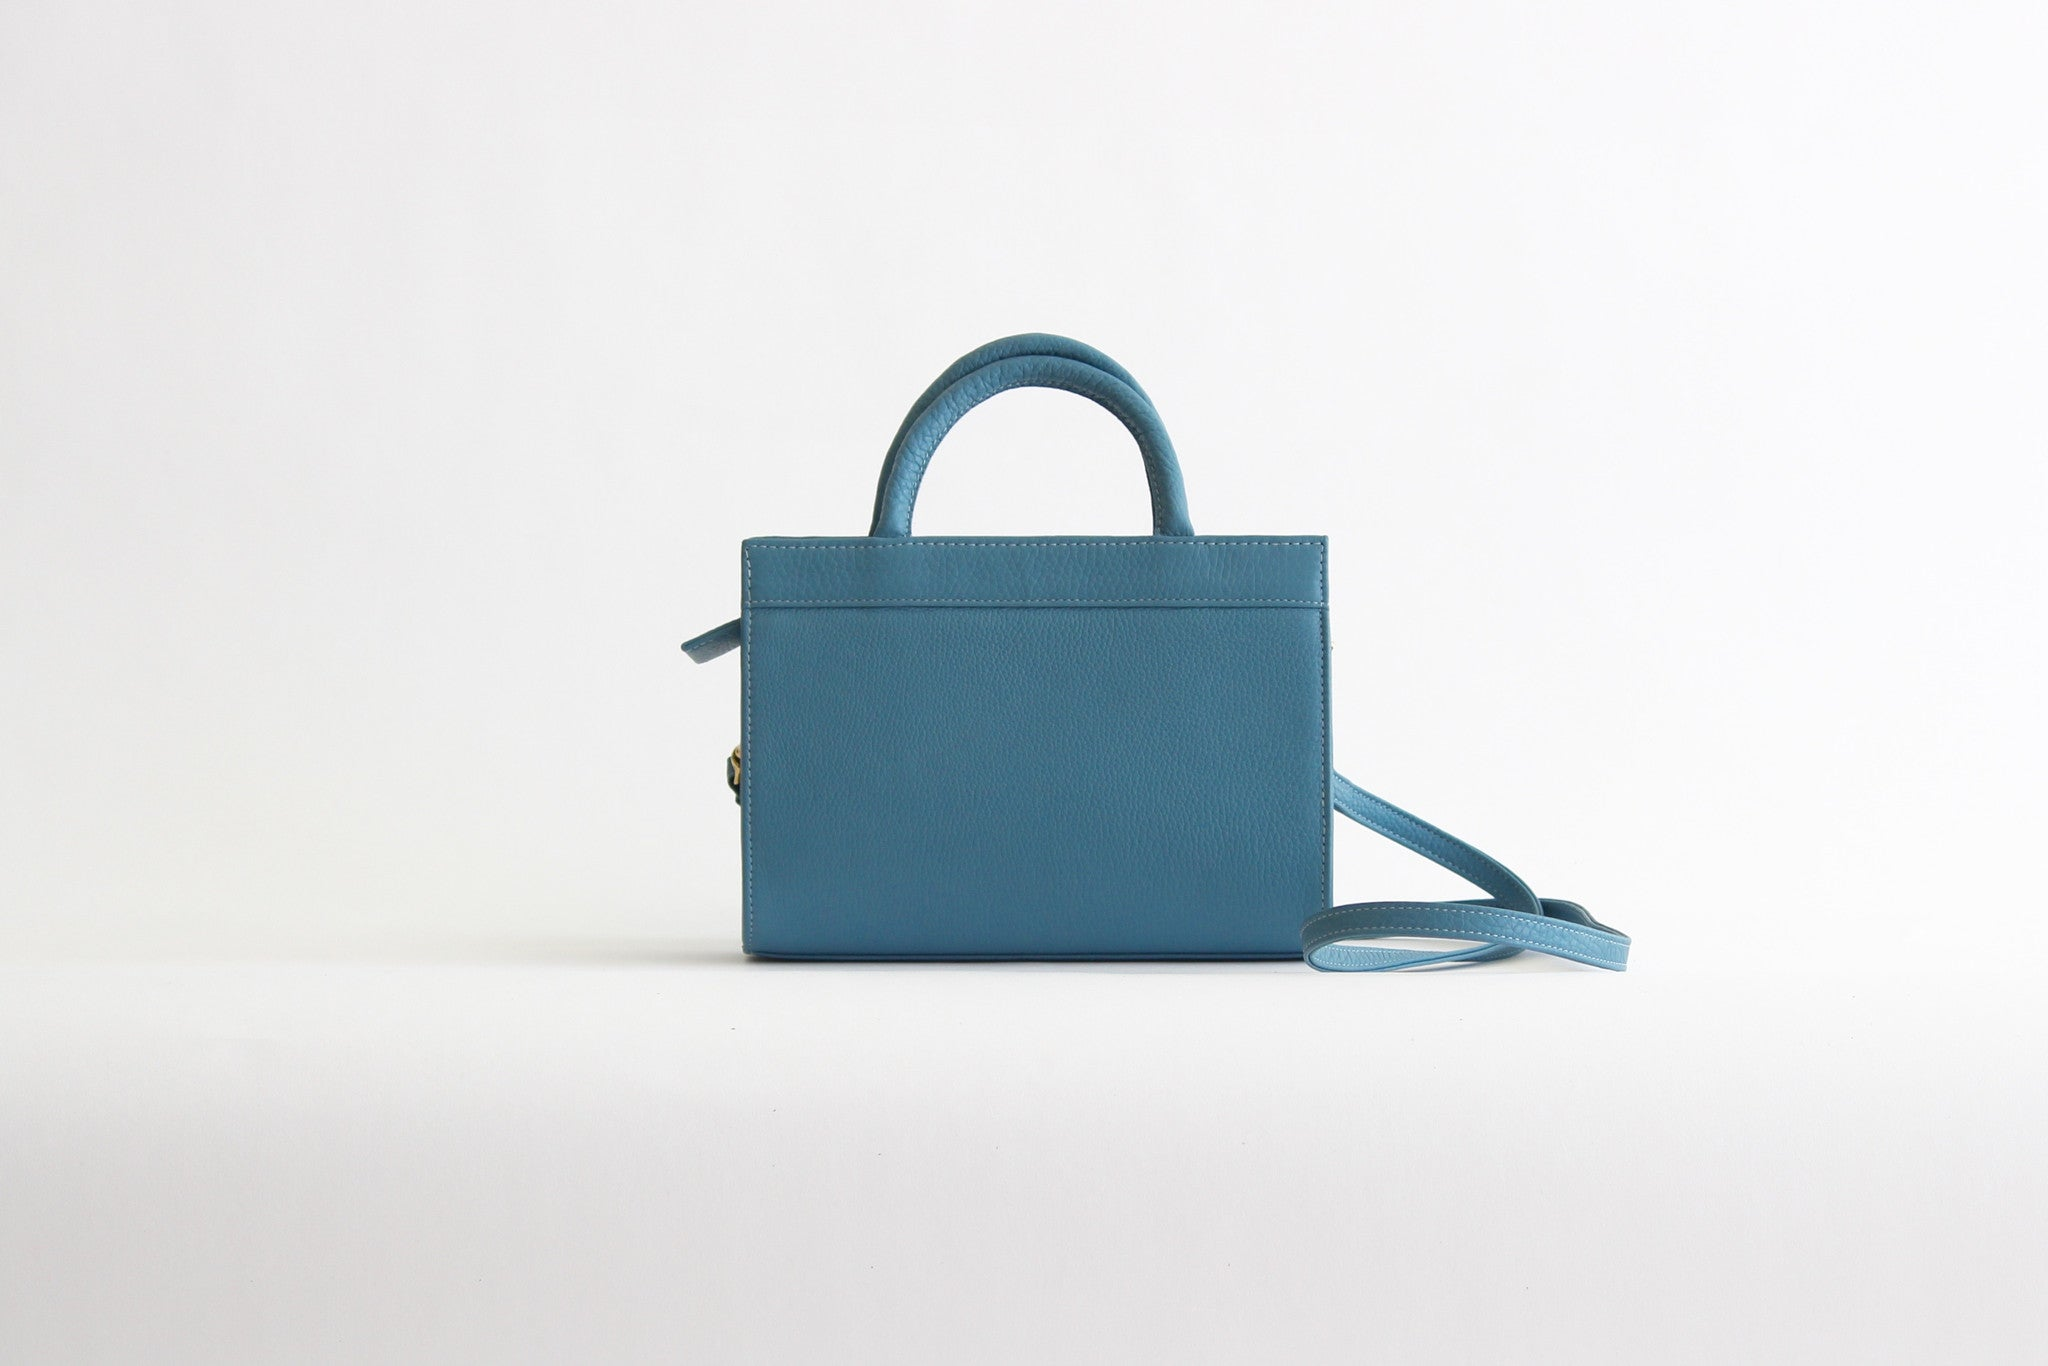 c.a.b. collection mini jeanne cerulean blue leather bag purse